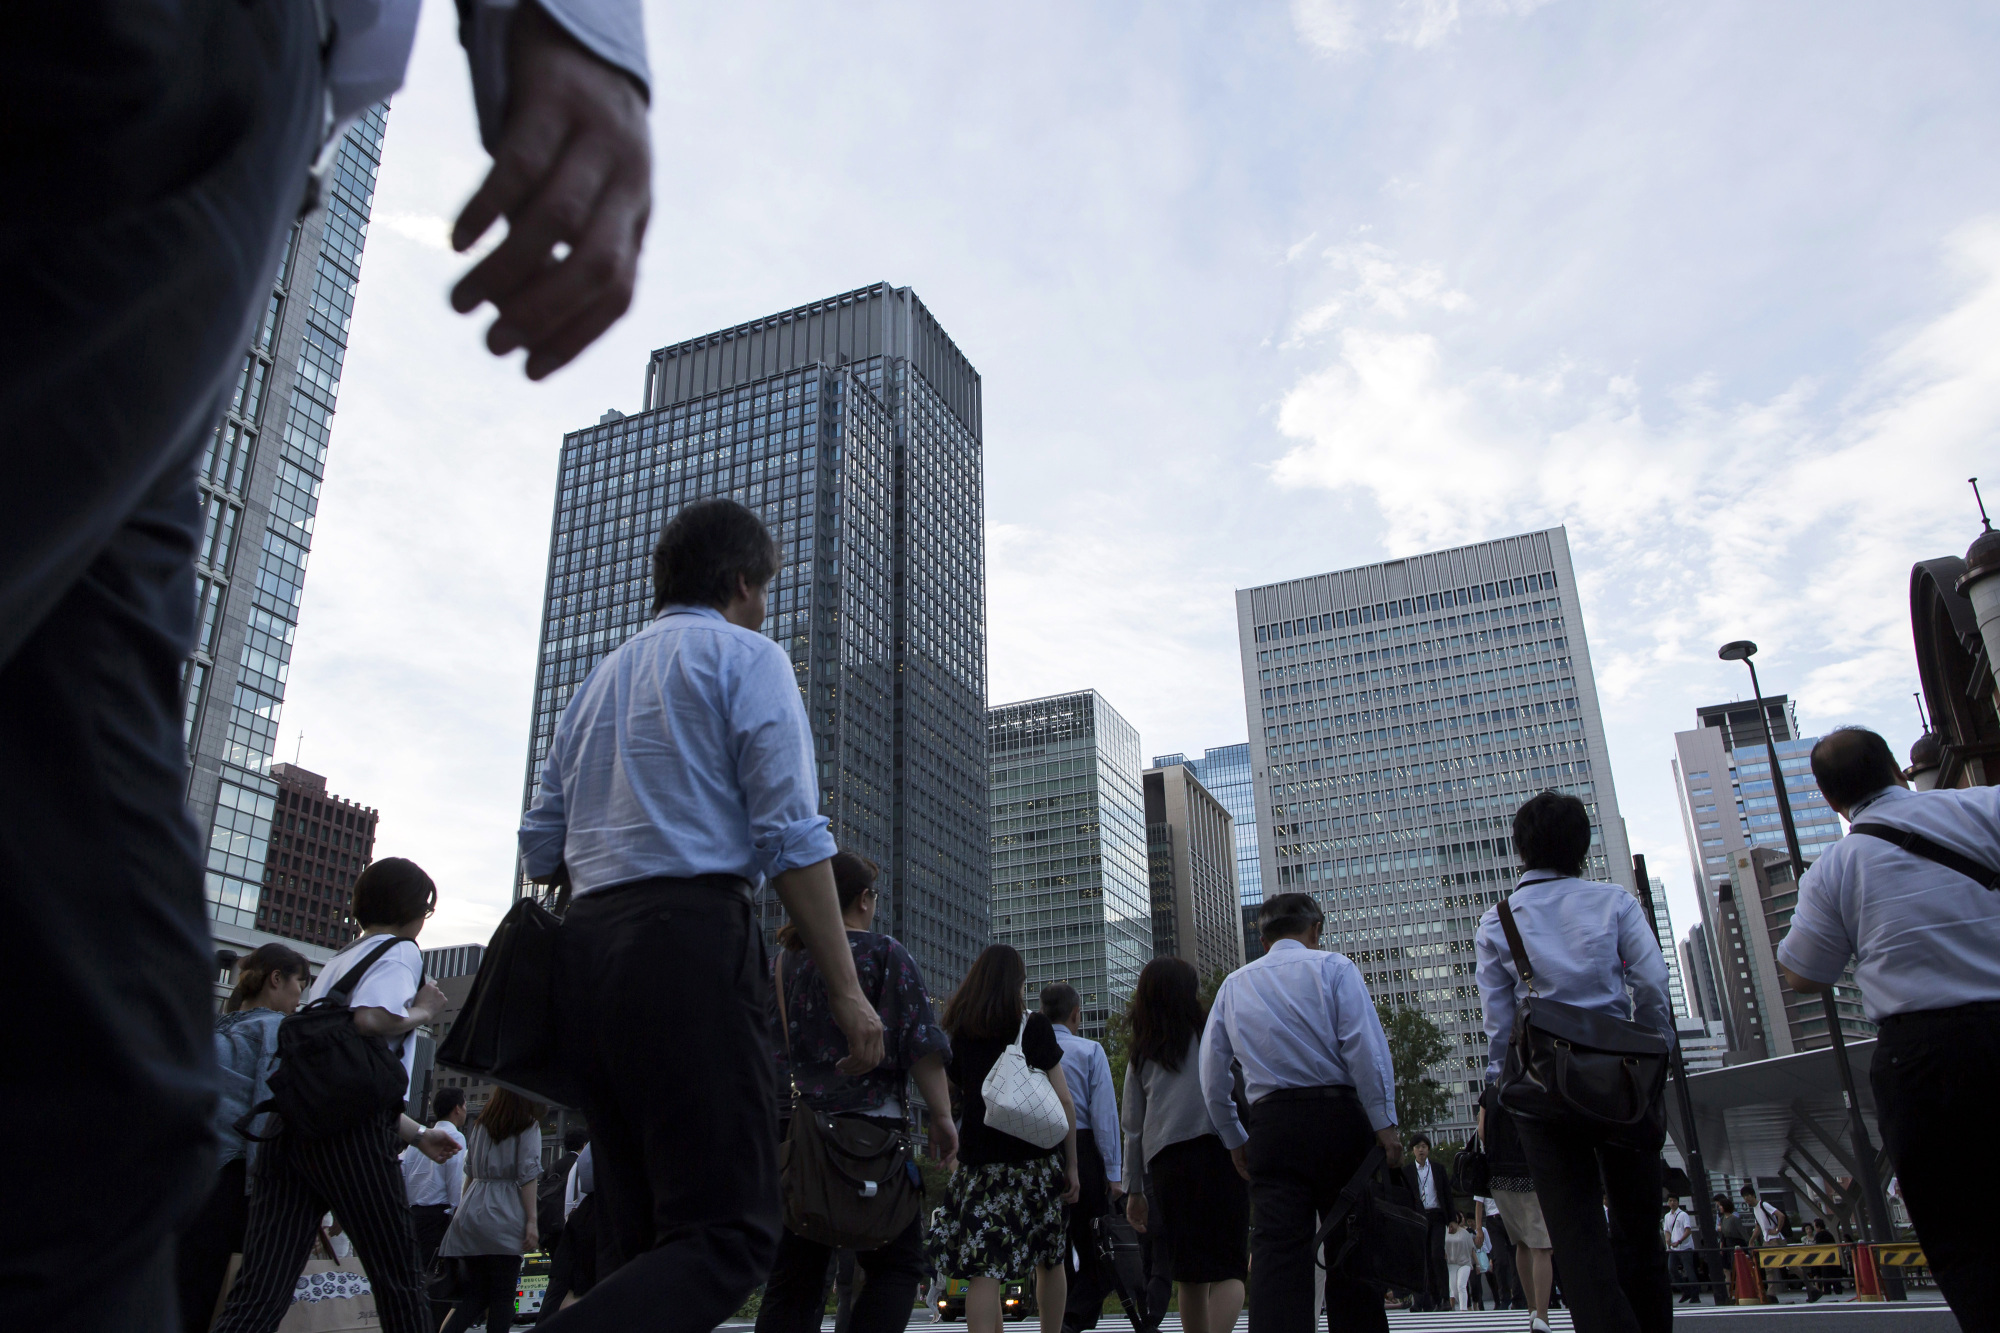 Commuters cross a road in the central business district of Tokyo on June 27. A poll shows most big and midsized Japanese firms favor a more open immigration system to offset the country's labor shortage. | BLOOMBERG